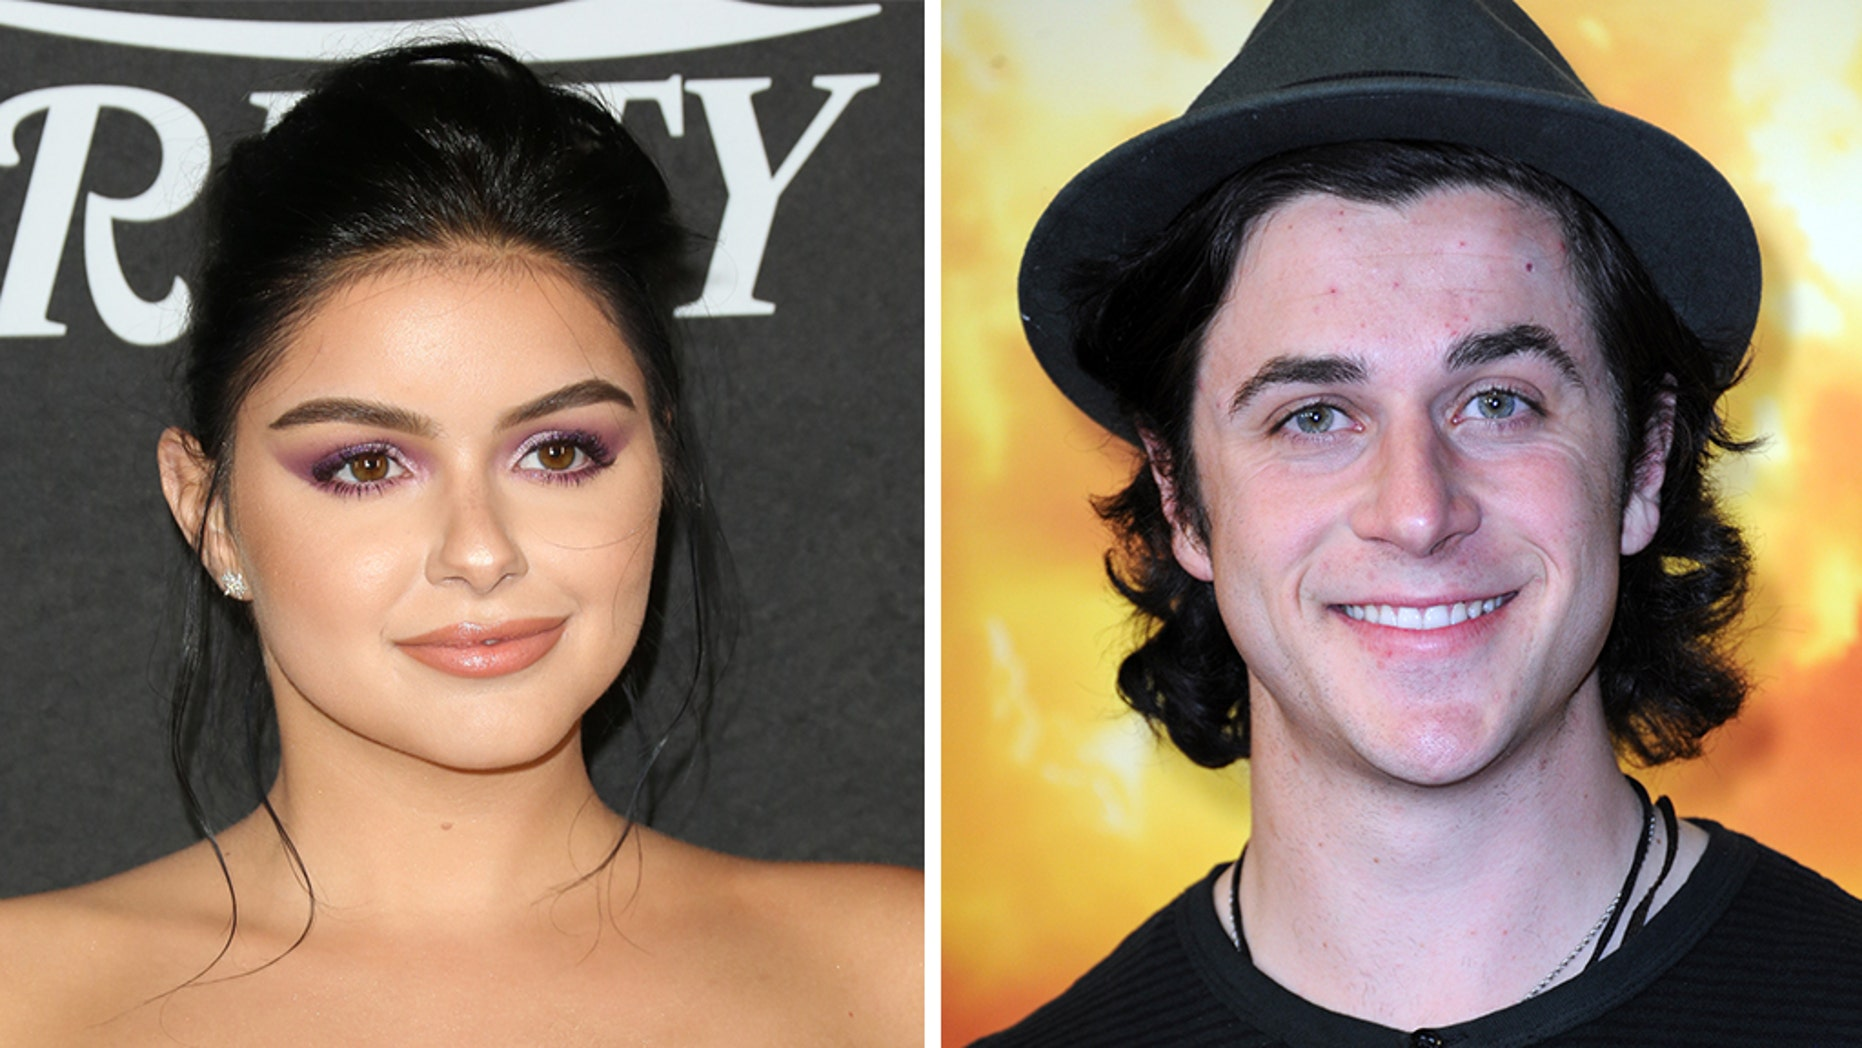 Ariel Winter slammed actor David Henrie on Twitter Tuesday after the 29-year-old was reportedly arrested for carrying a loaded gun to an airport earlier this week.